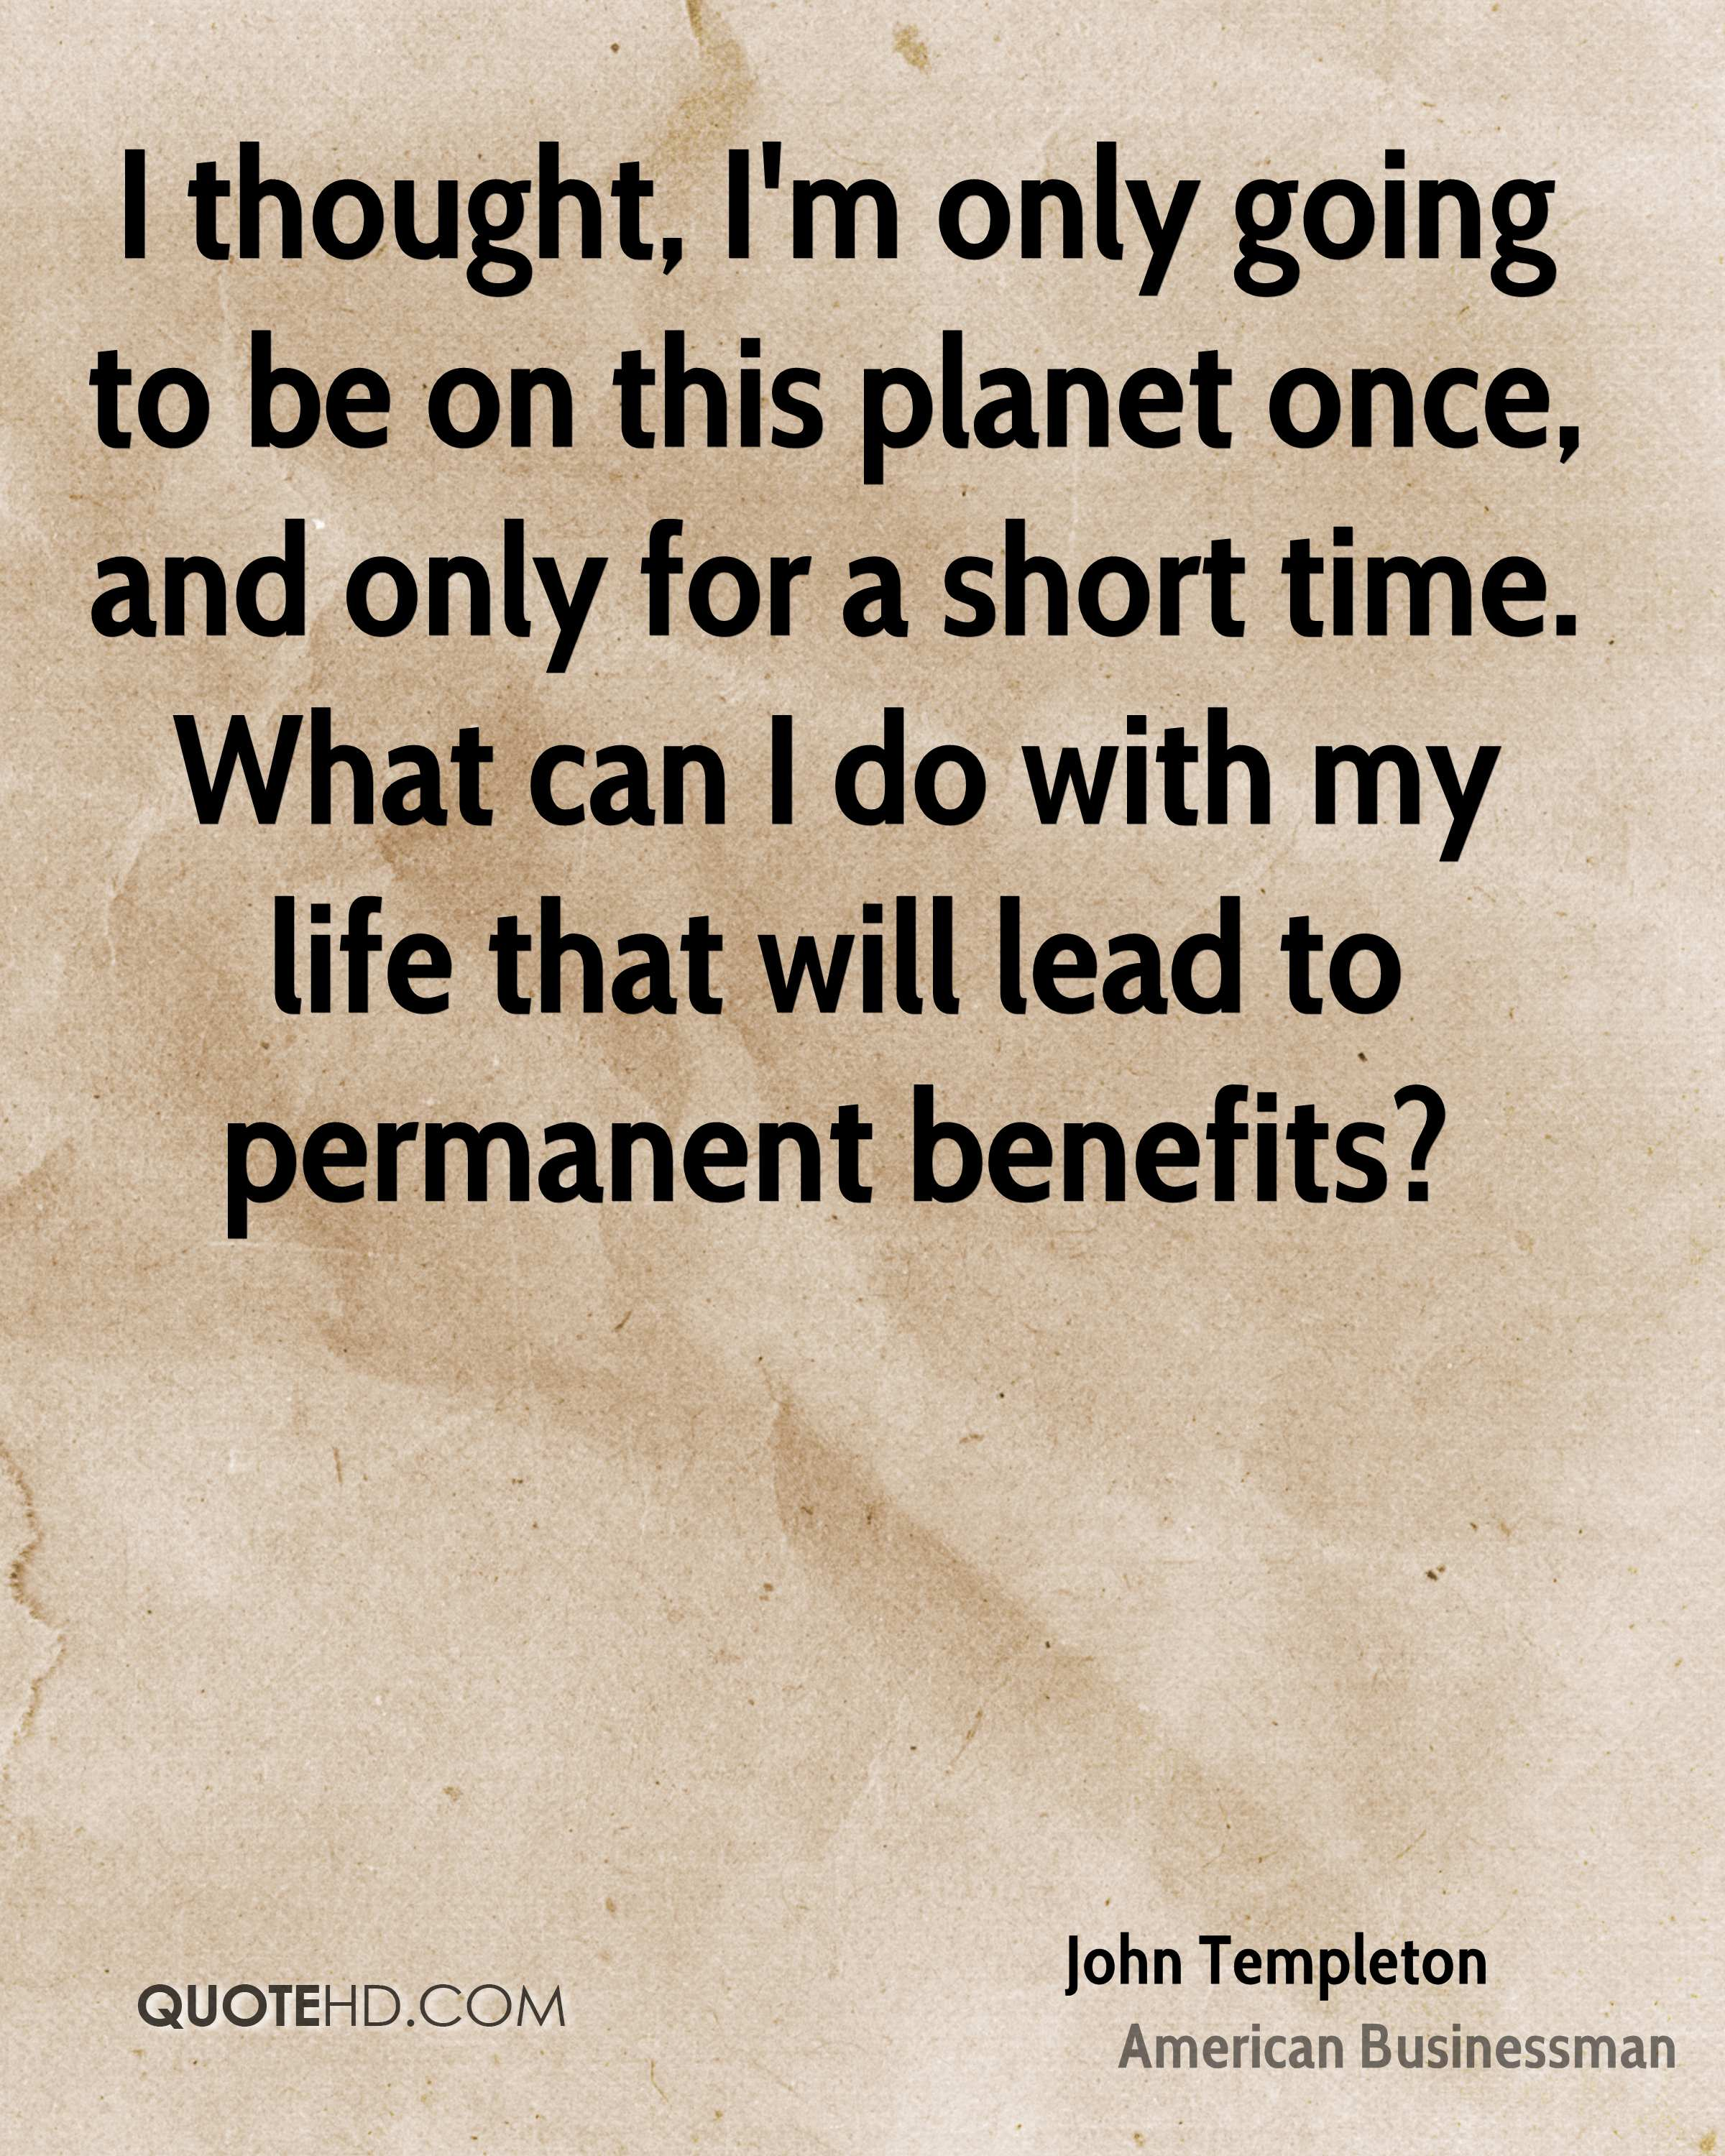 I thought, I'm only going to be on this planet once, and only for a short time. What can I do with my life that will lead to permanent benefits?